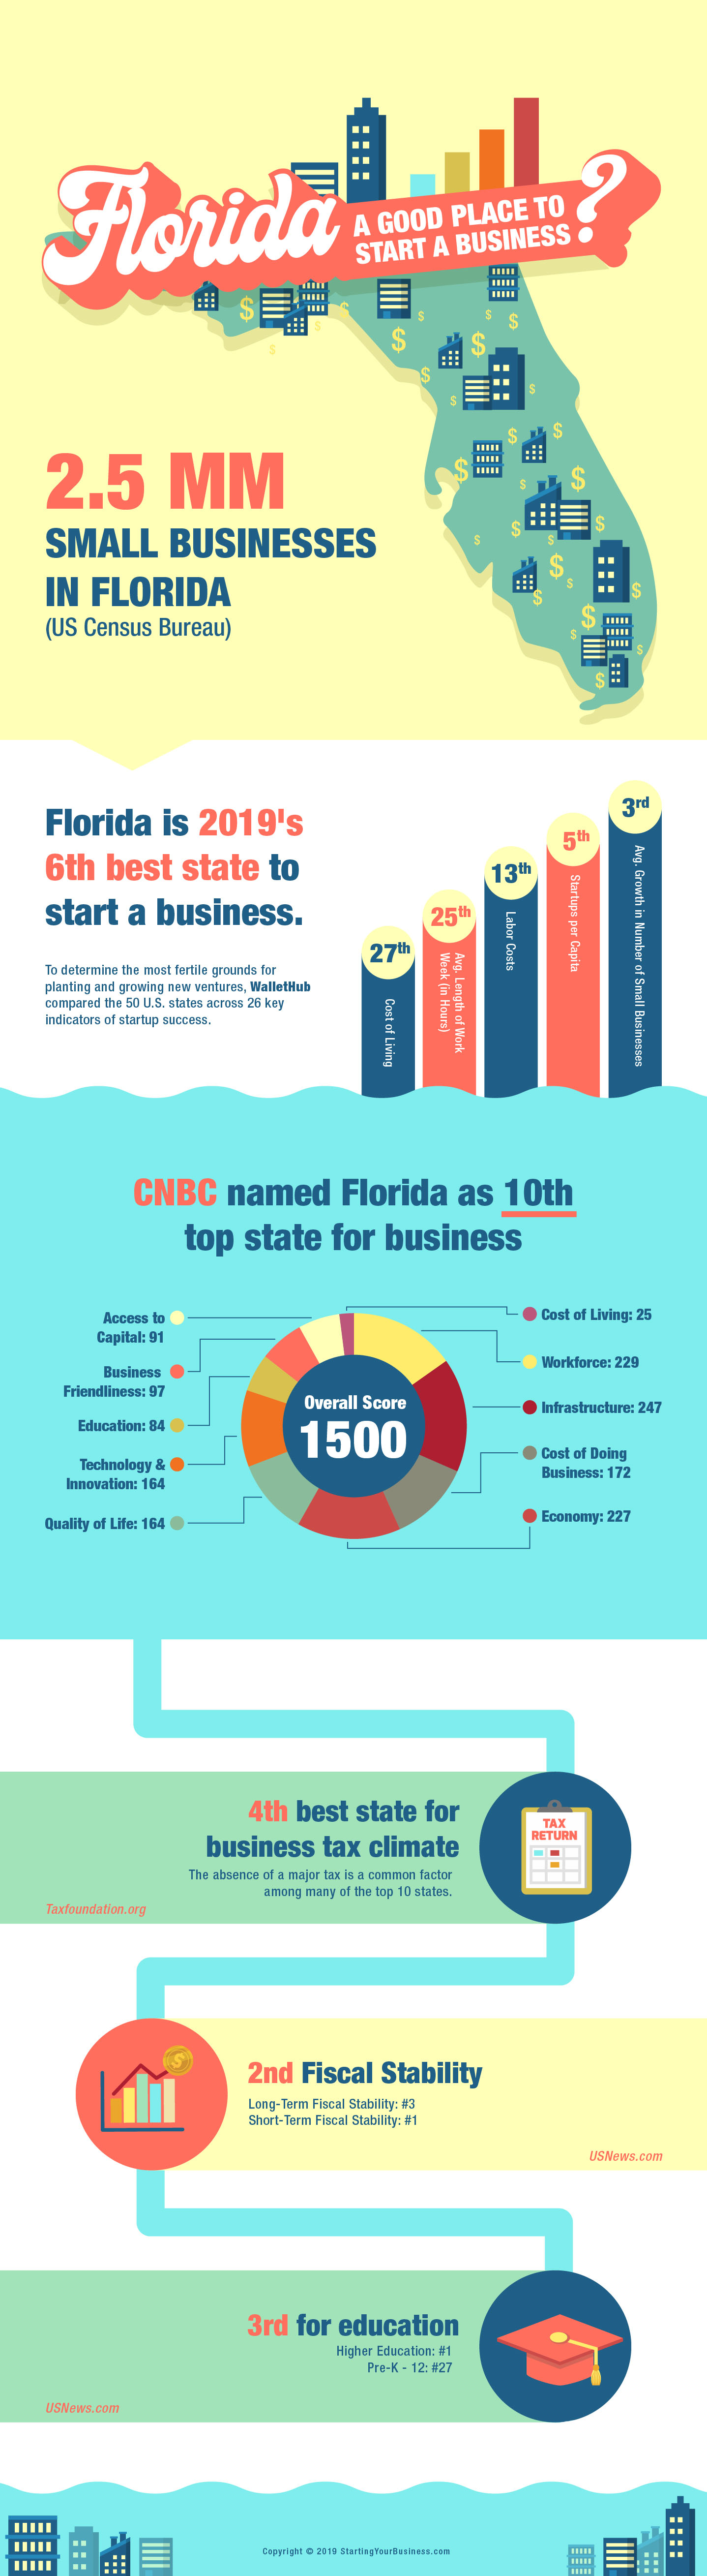 Is Florida a Good Place to Start a Business?